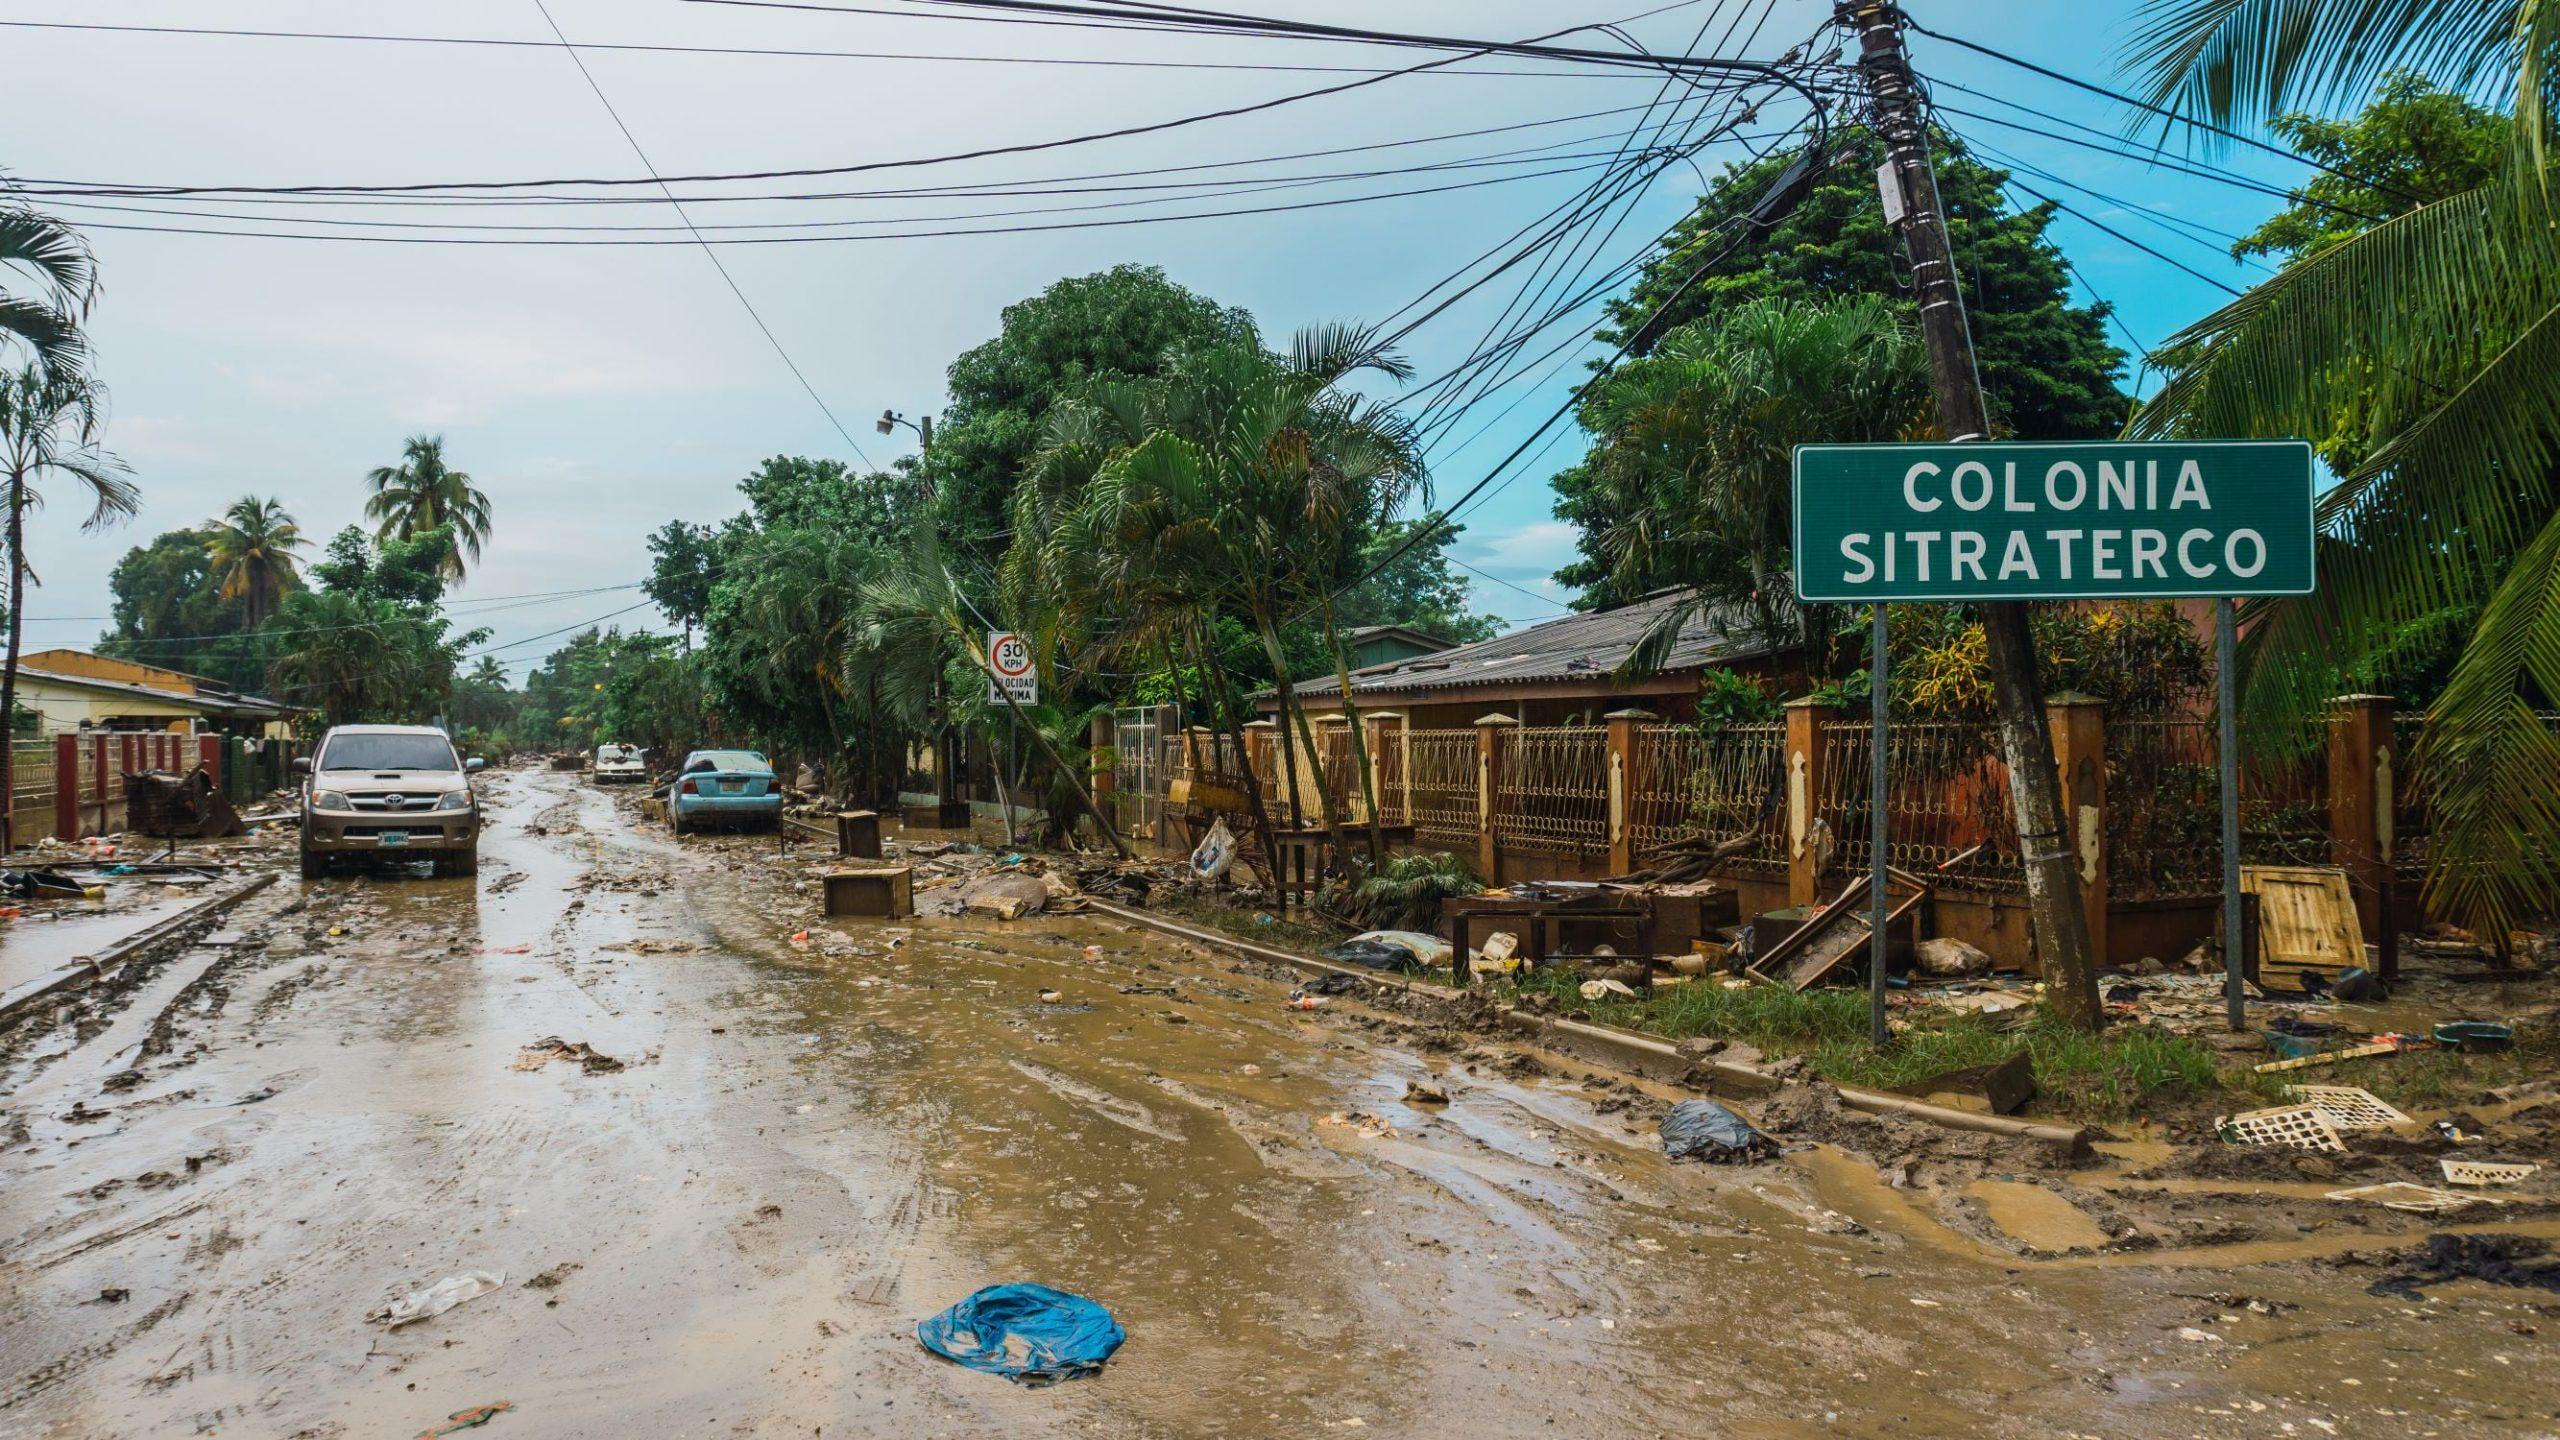 Picture of the aftermath of flooding from Hurricanes Eta and Iota in Valle de Sula, Honduras.